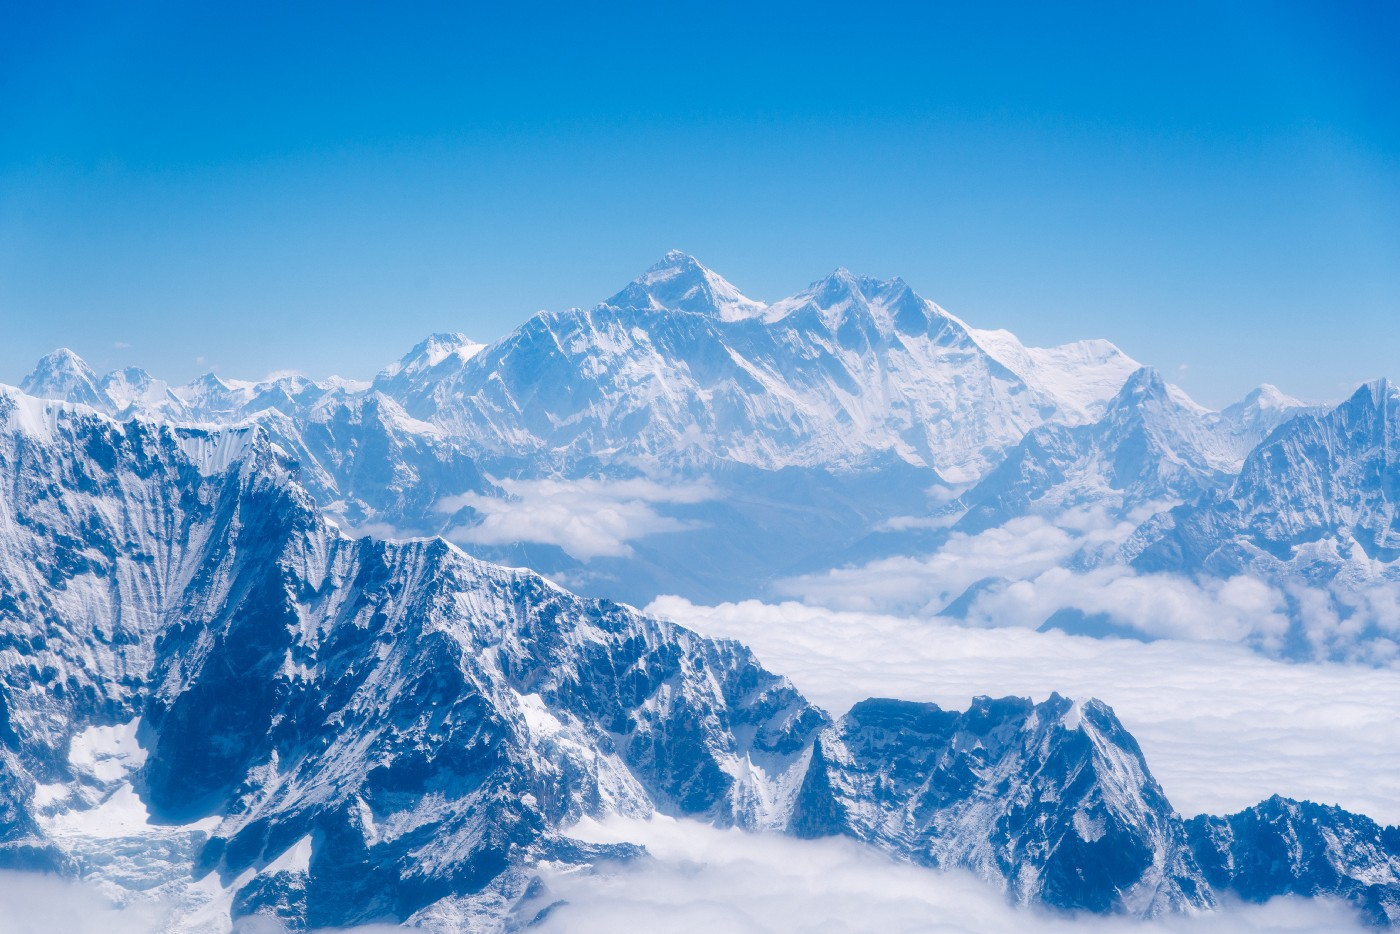 Mount Everest, the tallest mountain in the world, sits in the background covered in snow. Explorers long wanted to climb in the pursuit of human achievement.